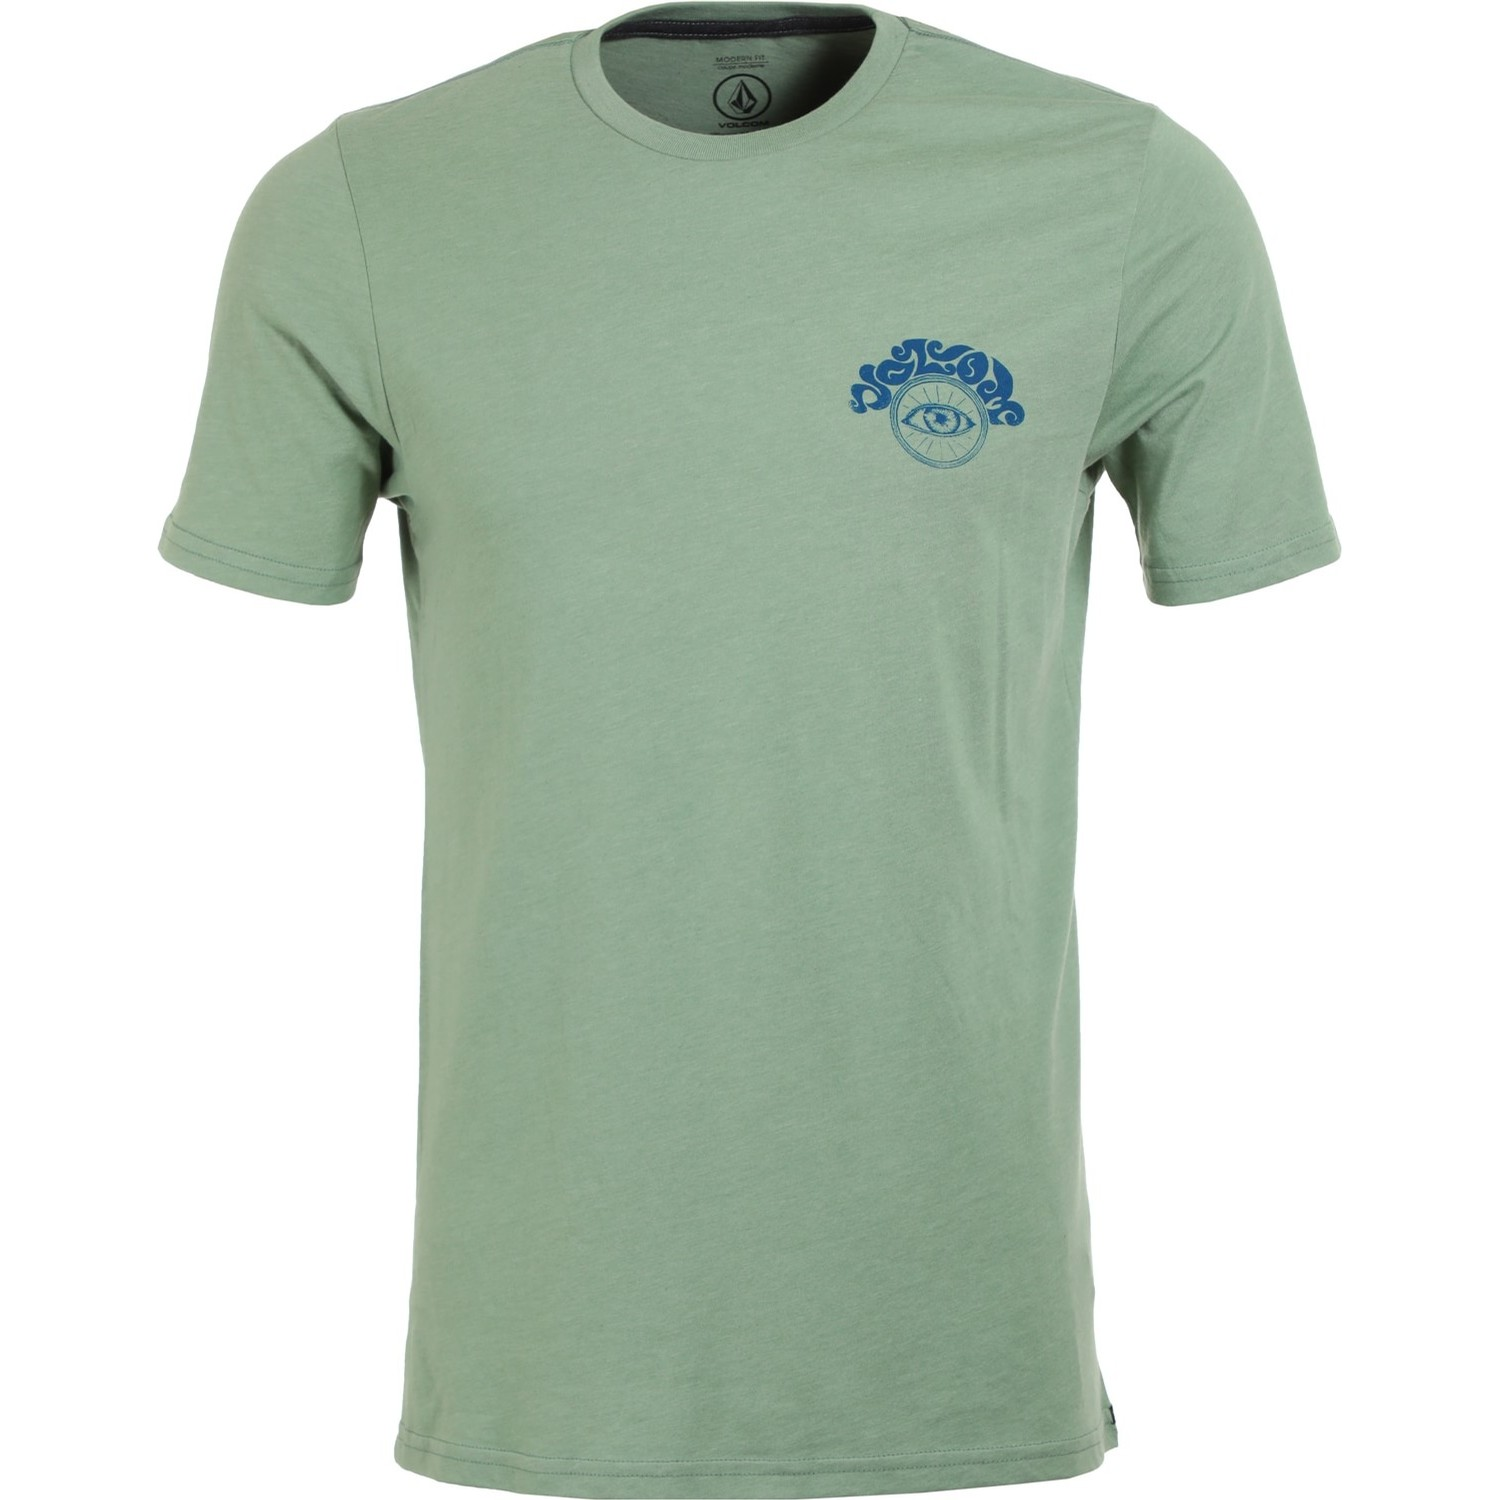 Sunshine Eye S/S Tee (Dusty Green)